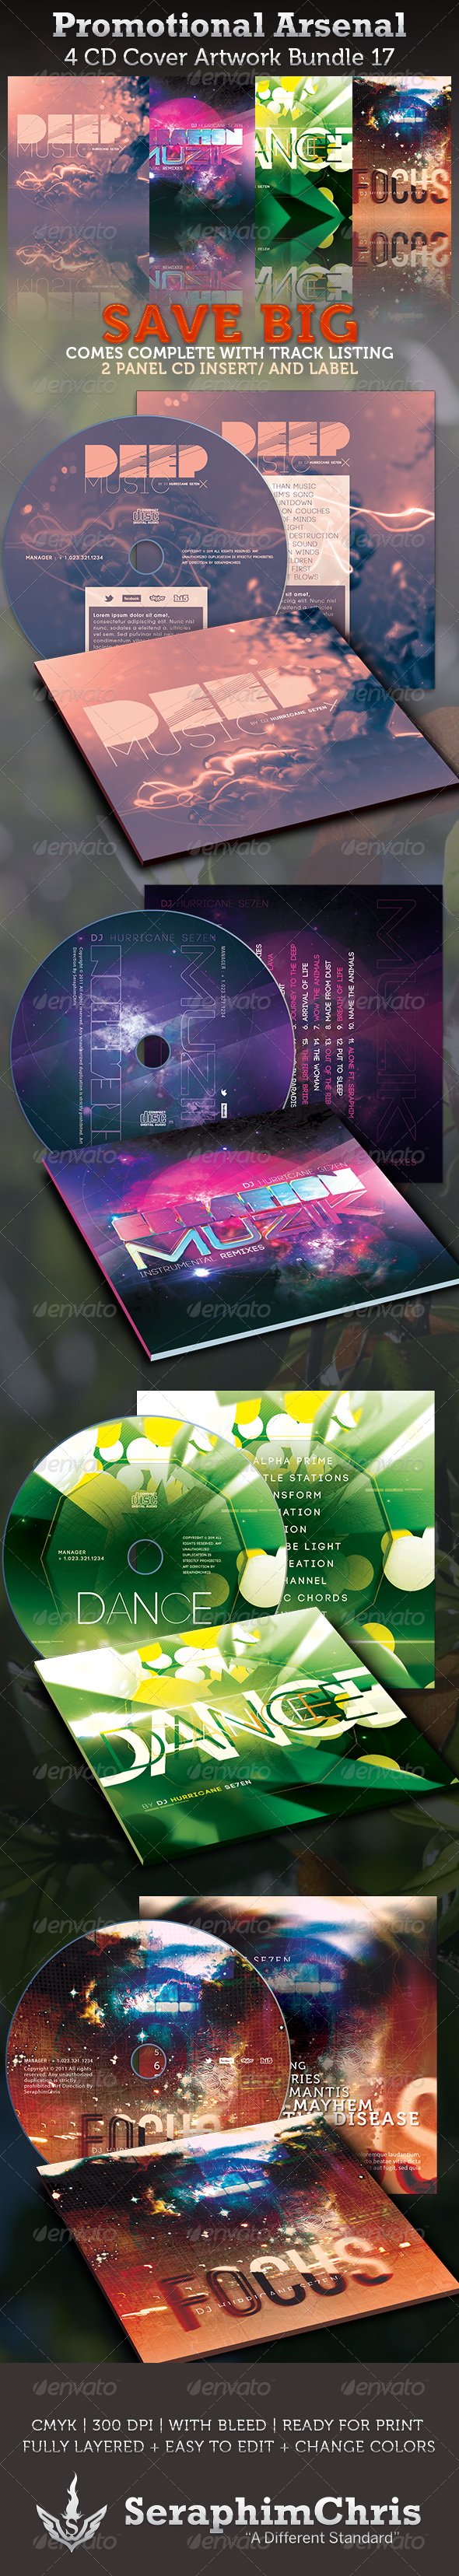 GraphicRiver Promotional Arsenal CD Cover Artwork Bundle 17 3624552